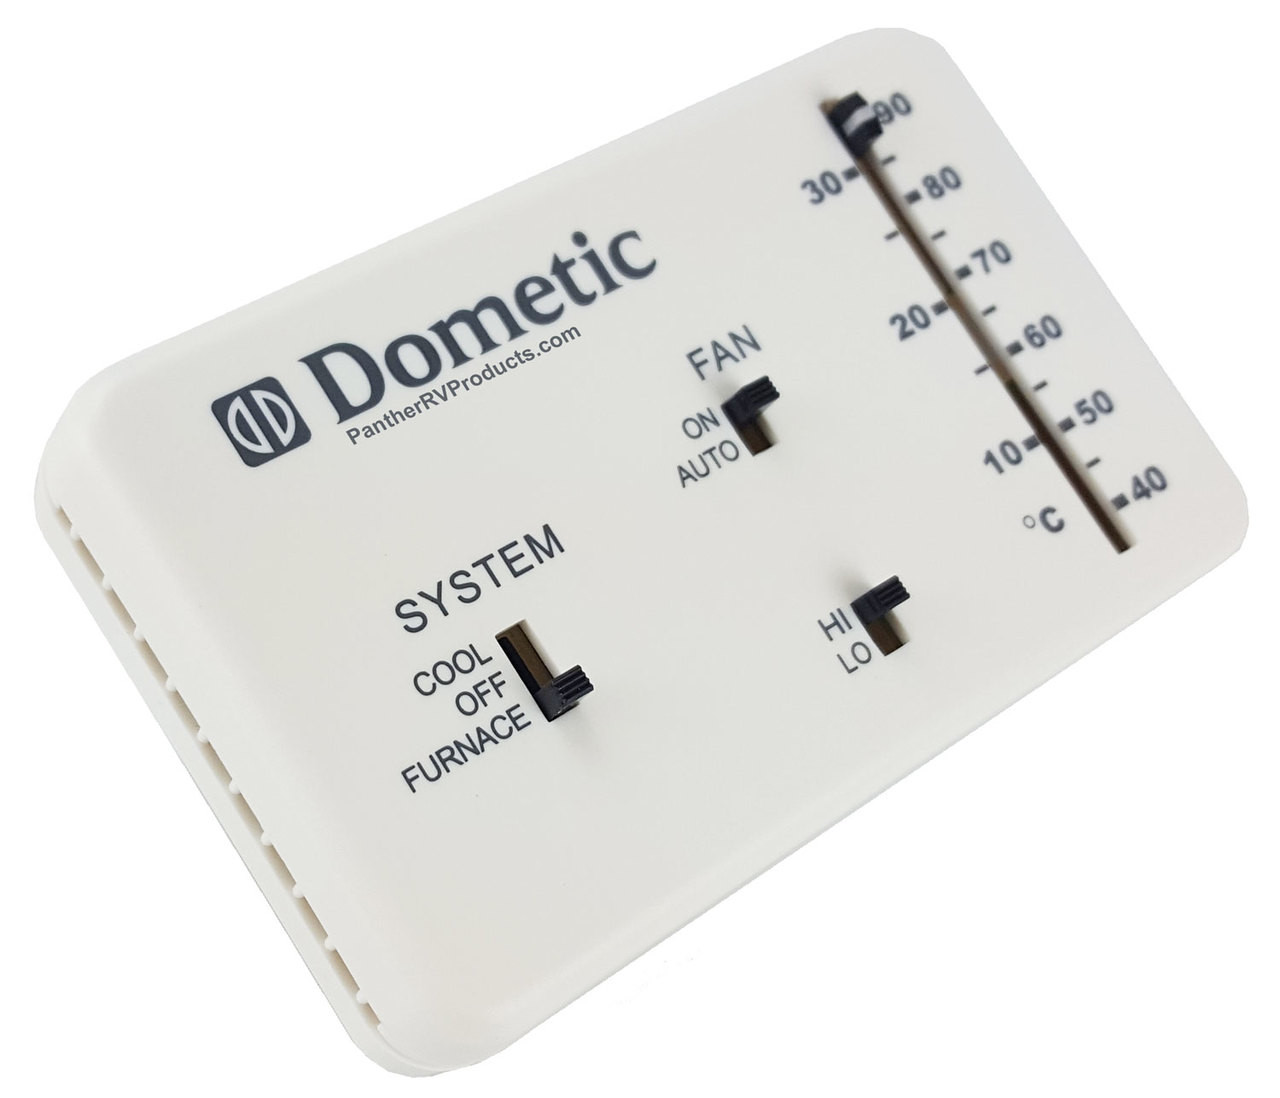 dometic 3106995 032 thermostat 6 wire analog control heat coolDometic Analog Thermostat Wiring Diagram #5